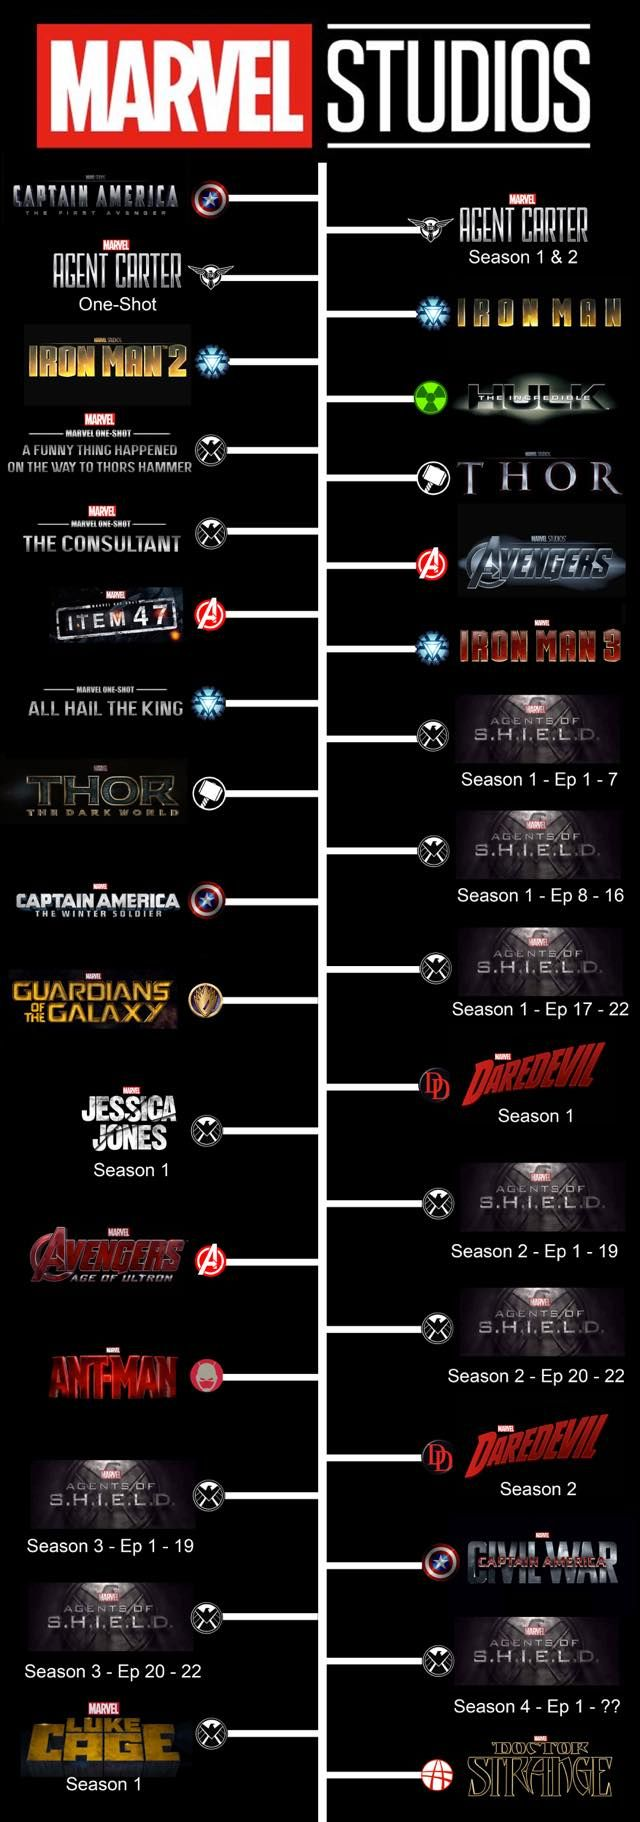 MARVEL STUDIOS CHRONOLOGICAL CHRONOLOGY MOVIES THOR CAPTAIN AMERICA AVENGERS SHIELDS GUARDIANS OF THE GALAXY JESSICA JONES BOLD BY DAVID AND THE PLUSHIES